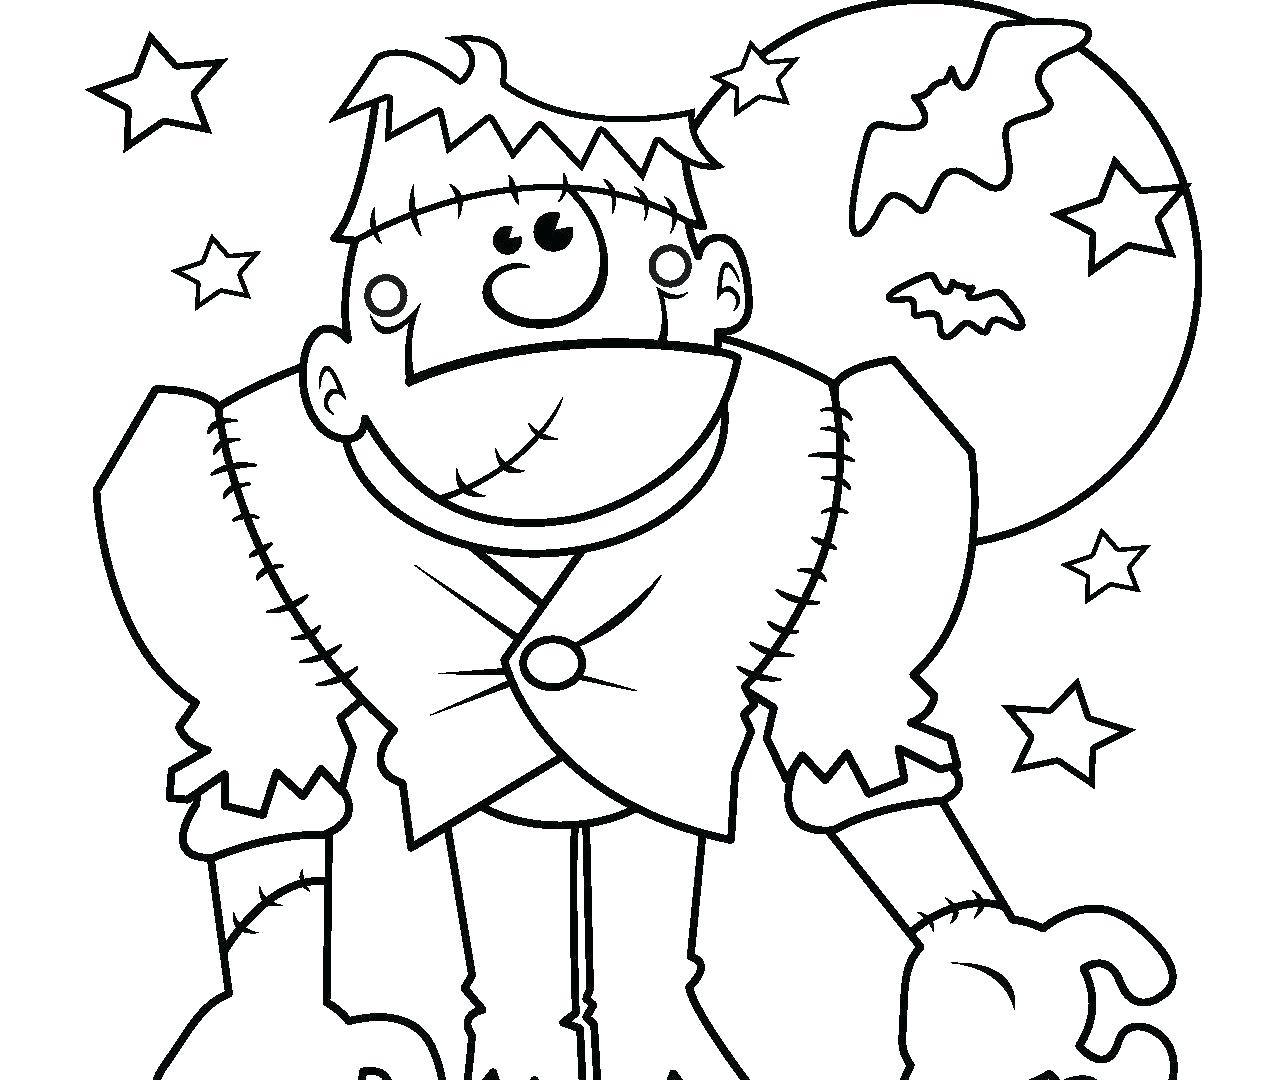 Halloween Frankenstein Coloring Pages Frankenstein Full Size Coloring Pages Print Coloring